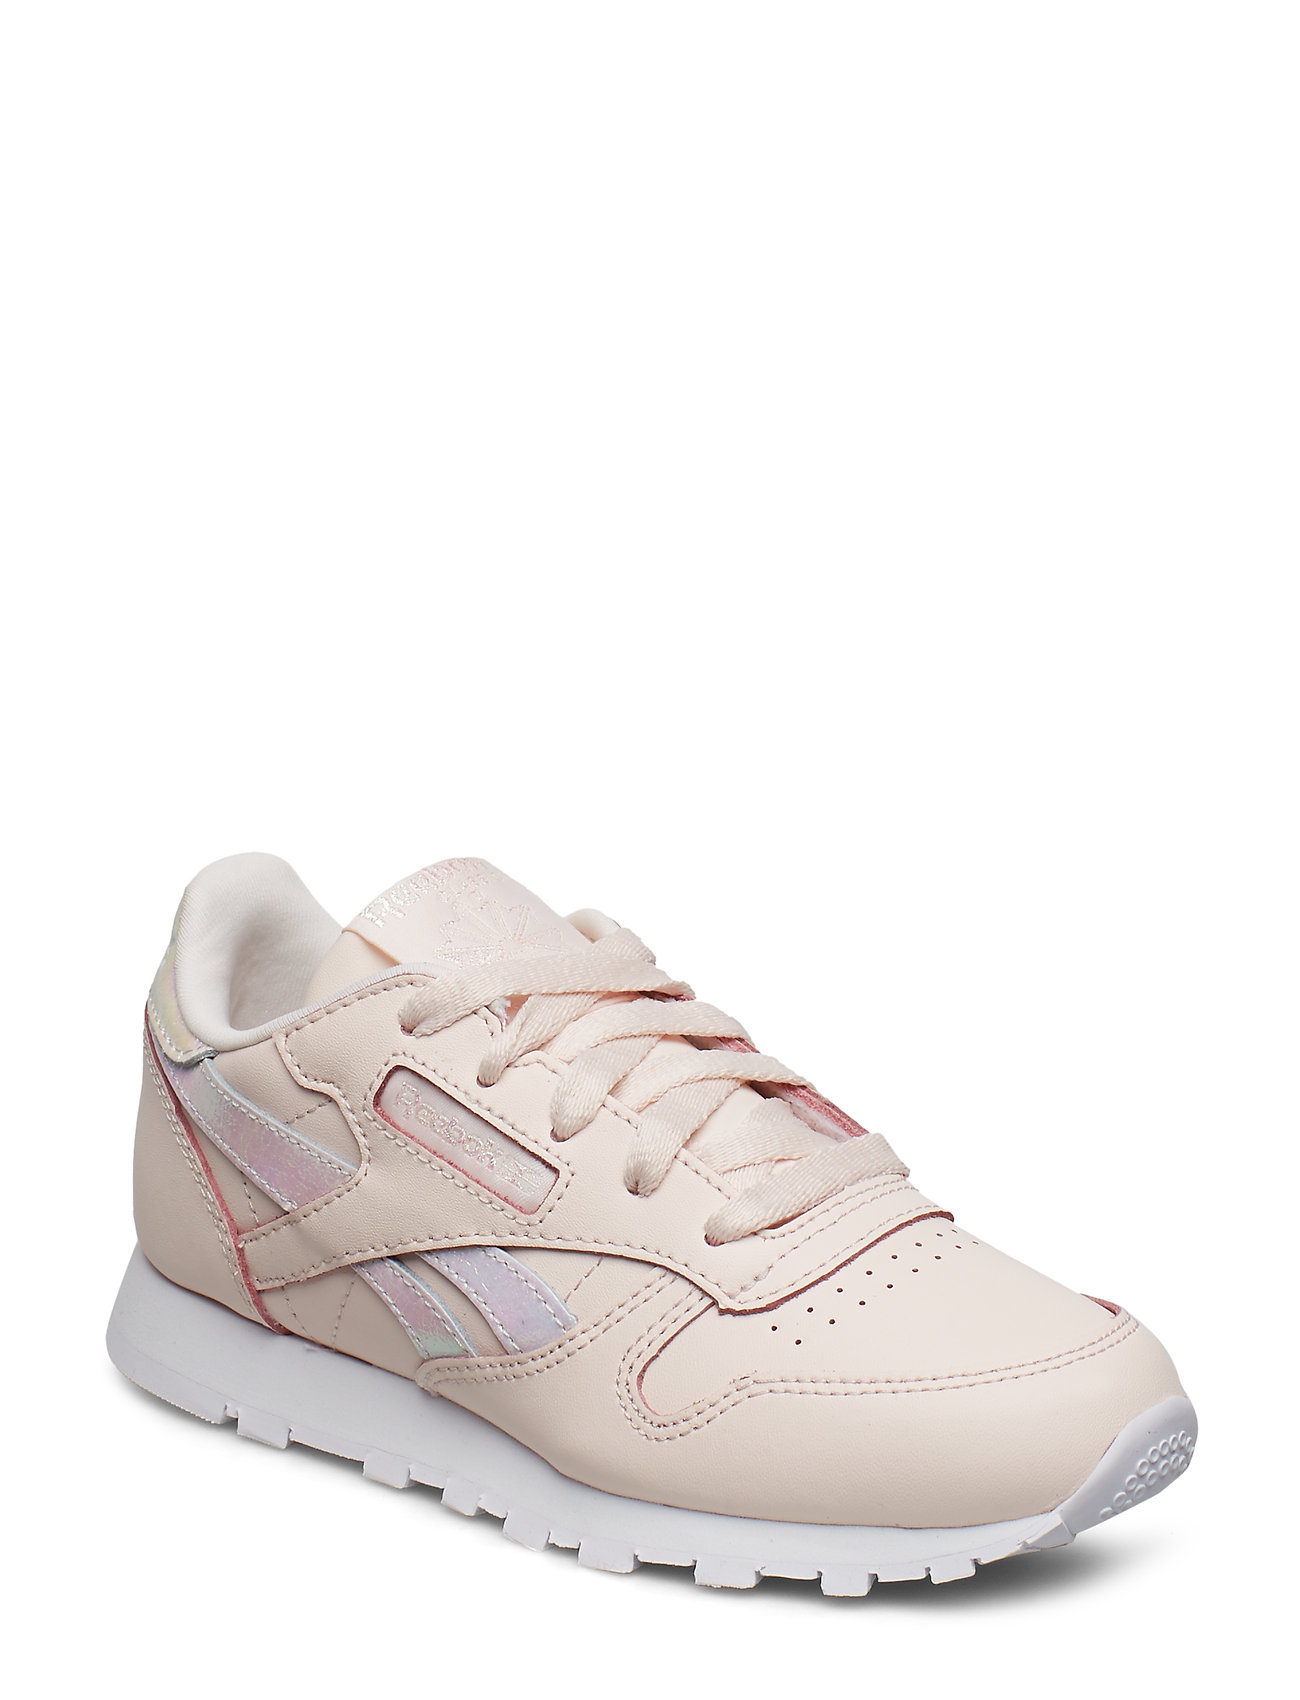 Reebok Classics CLASSIC LEATHER - PALE PINK/WHITE